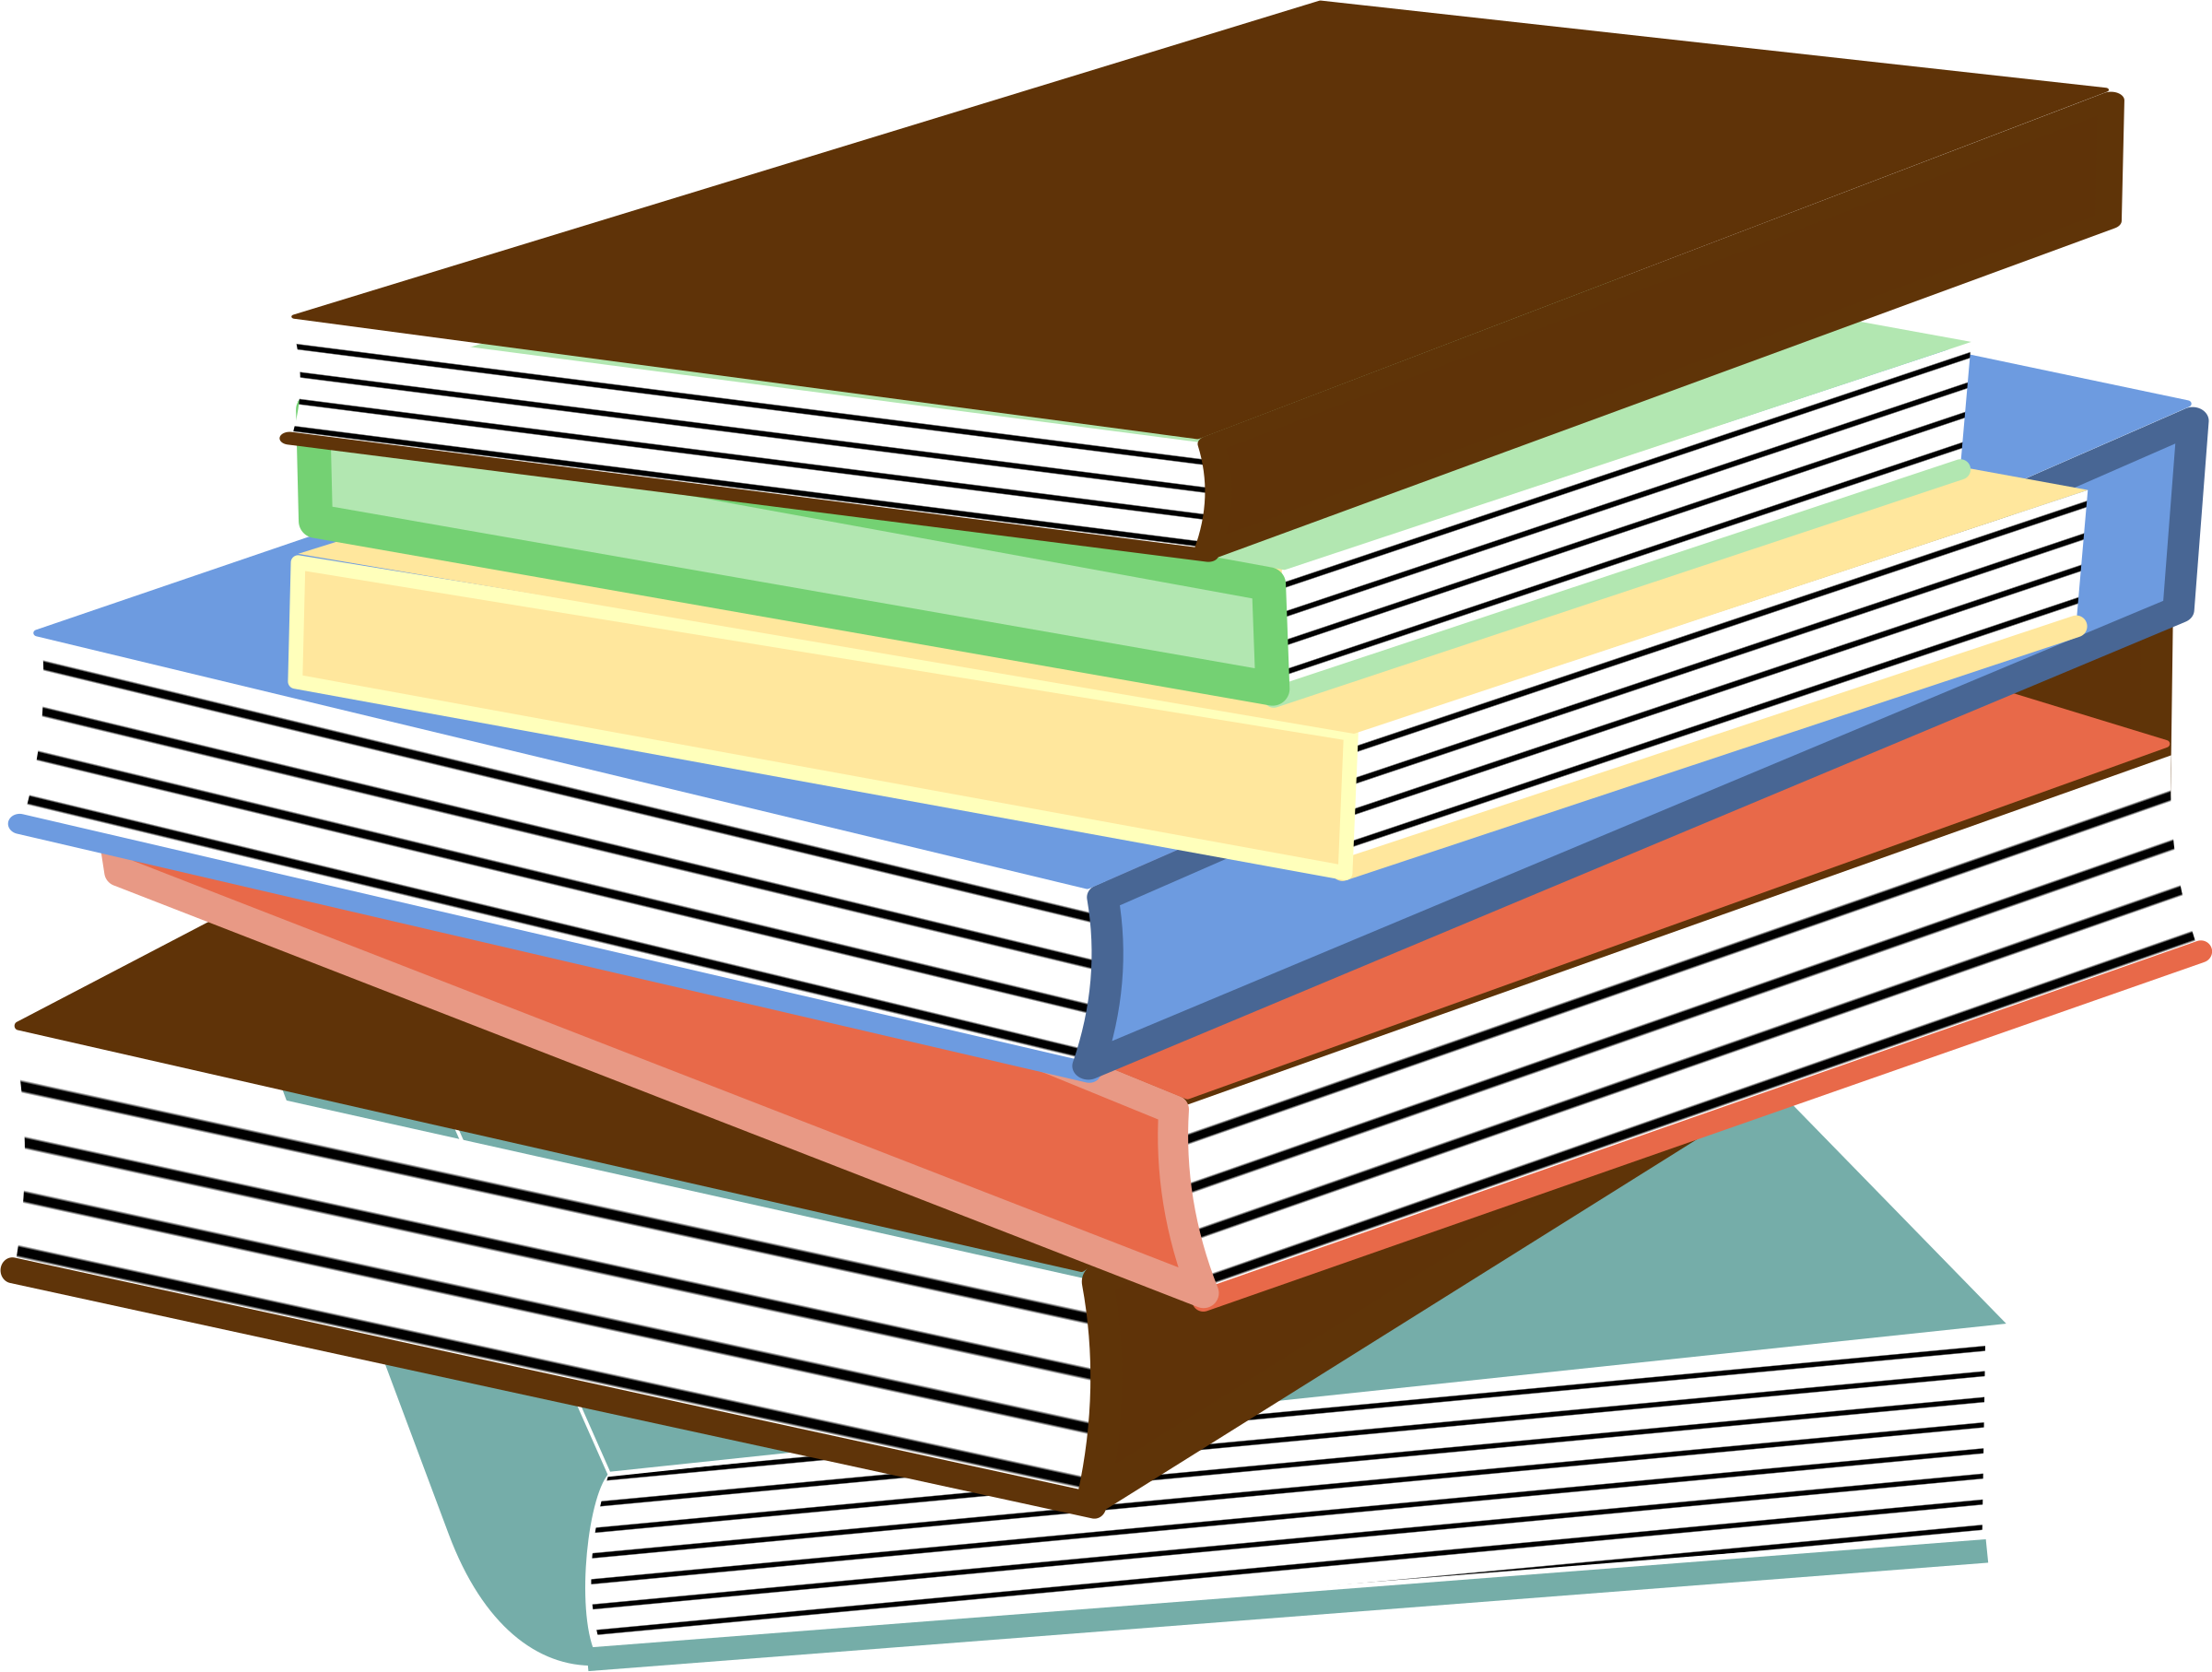 Book clipart stack image freeuse download Clipart - stack of books 01 image freeuse download